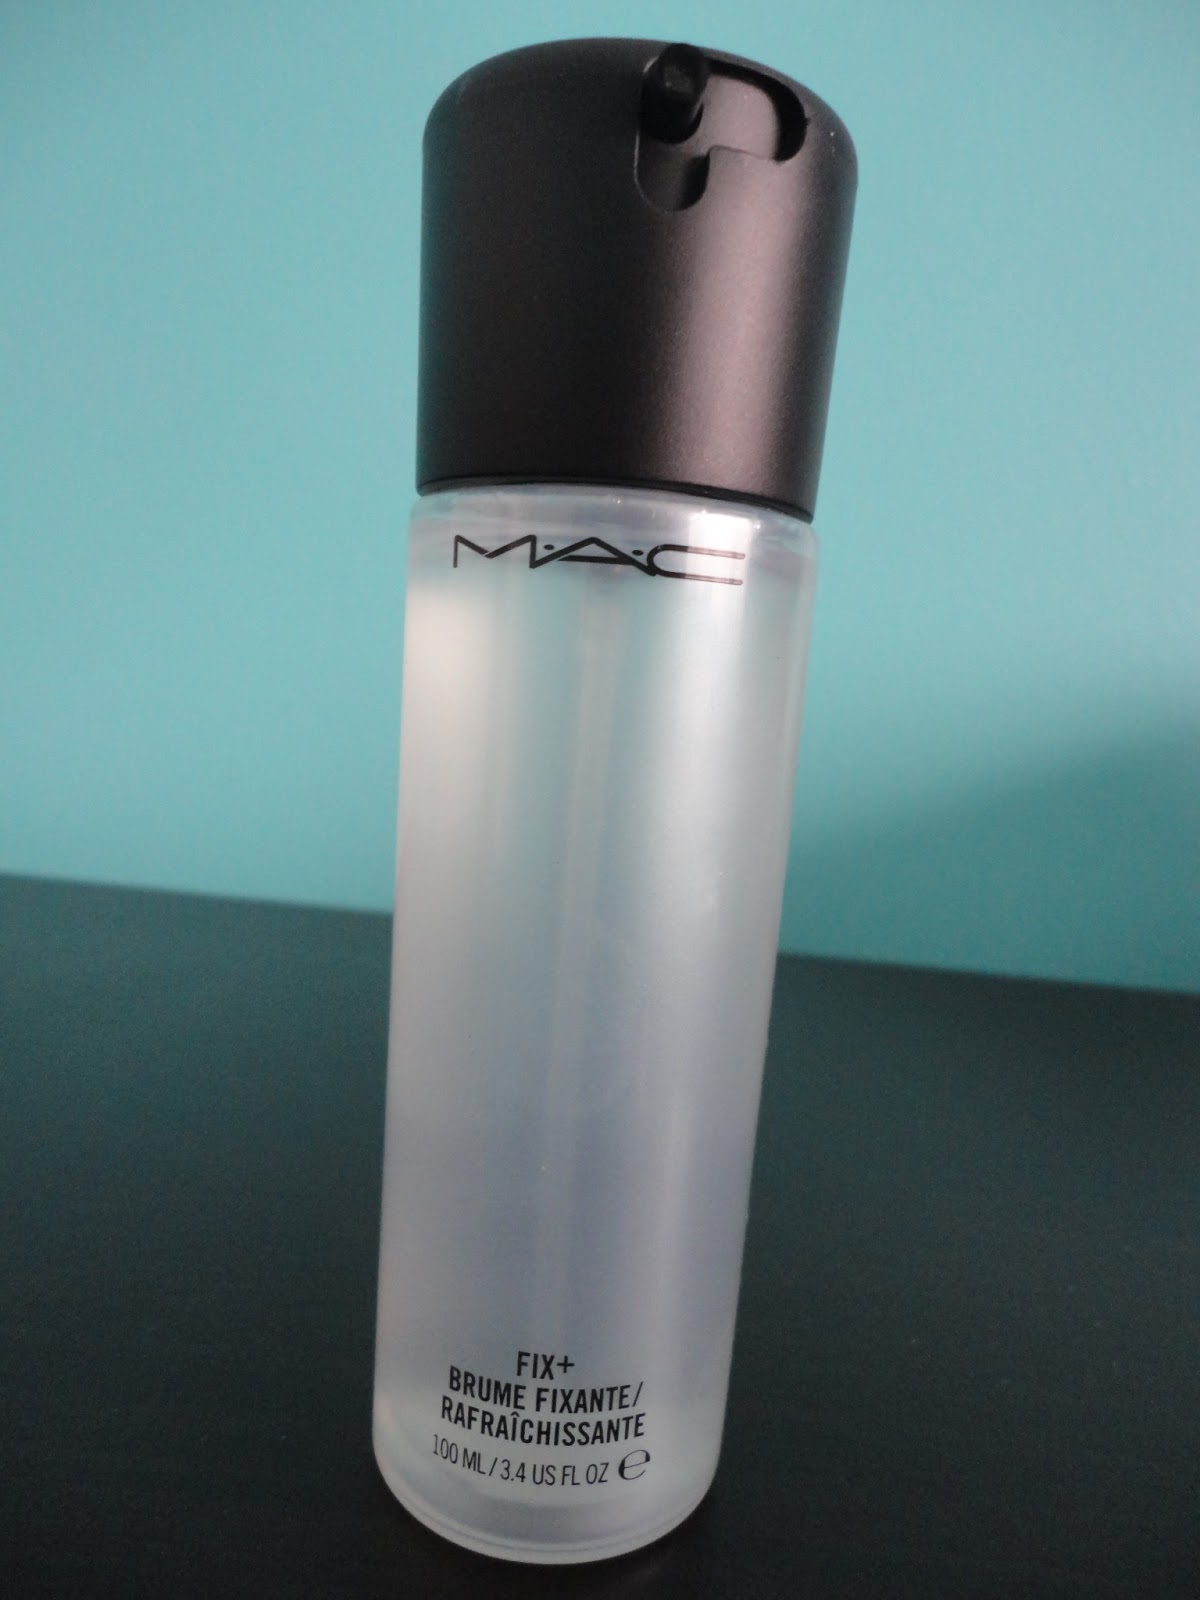 MAC Fix+: Is it Worth the Hype? A Review | Natalie Loves Beauty